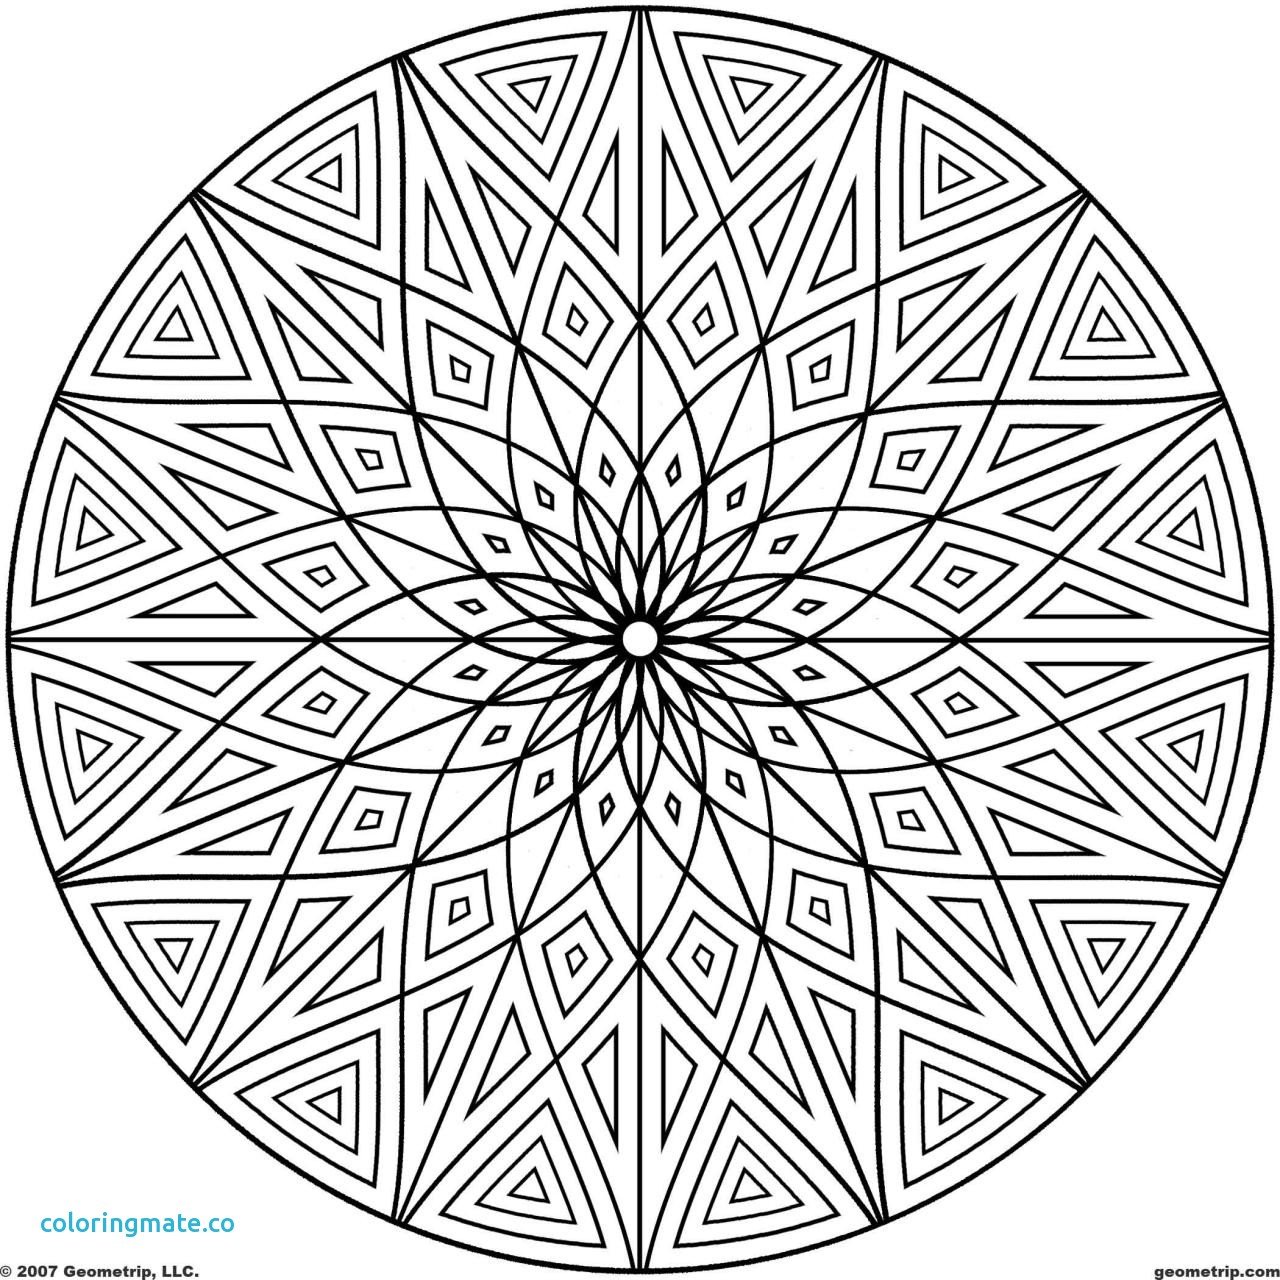 1280x1280 Coloring Pages Patterns Elegant Coloring Design Page Geometric